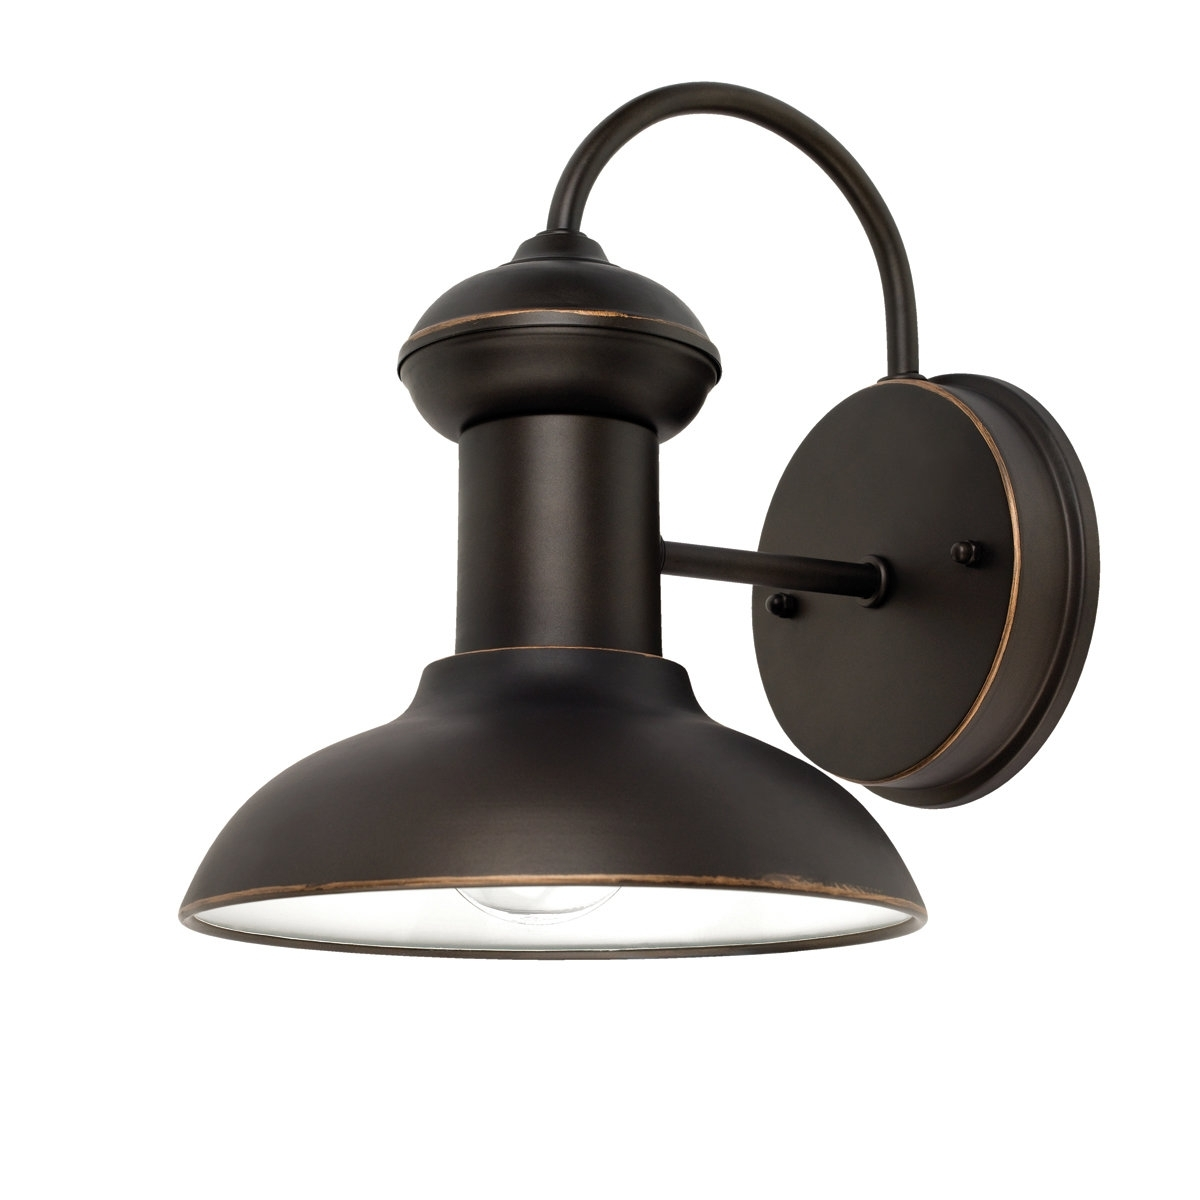 Outdoor Lighting Sale You'll Love | Wayfair In Battery Operated Outdoor Lights At Wayfair (#11 of 15)